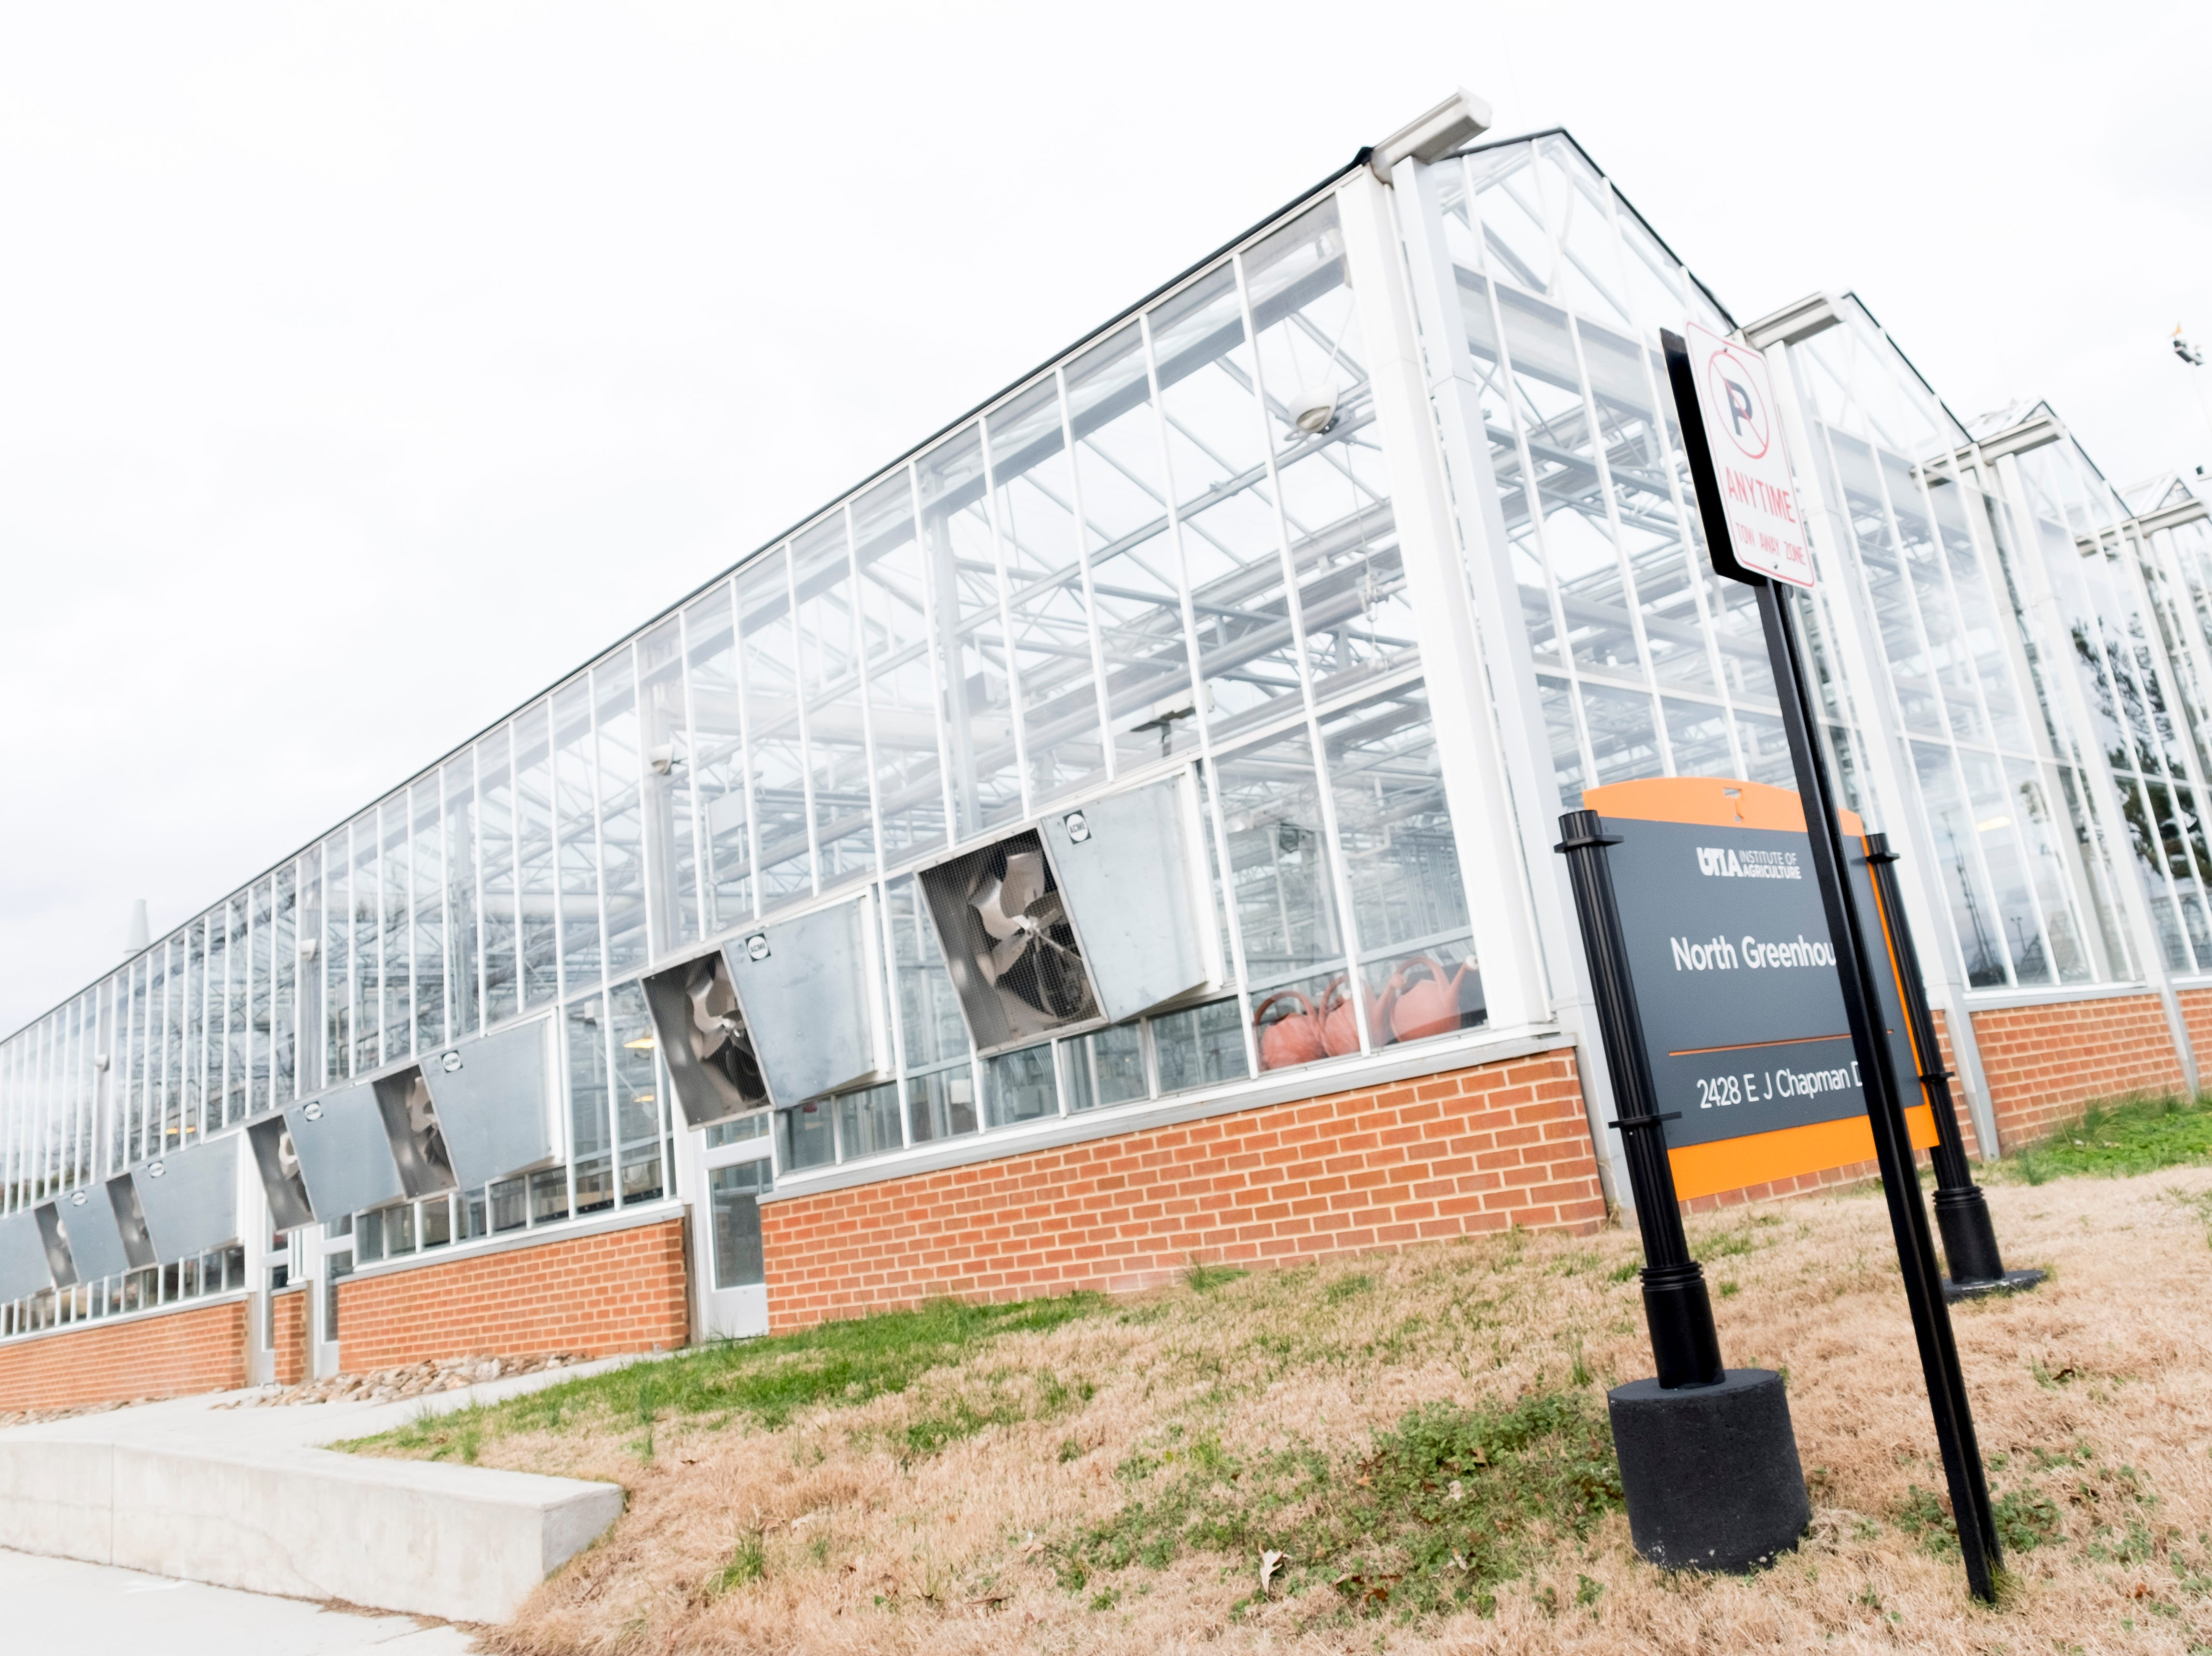 North Greenhouse on the University of Tennessee campus in Knoxville, Tennessee on Tuesday, January 1, 2019.